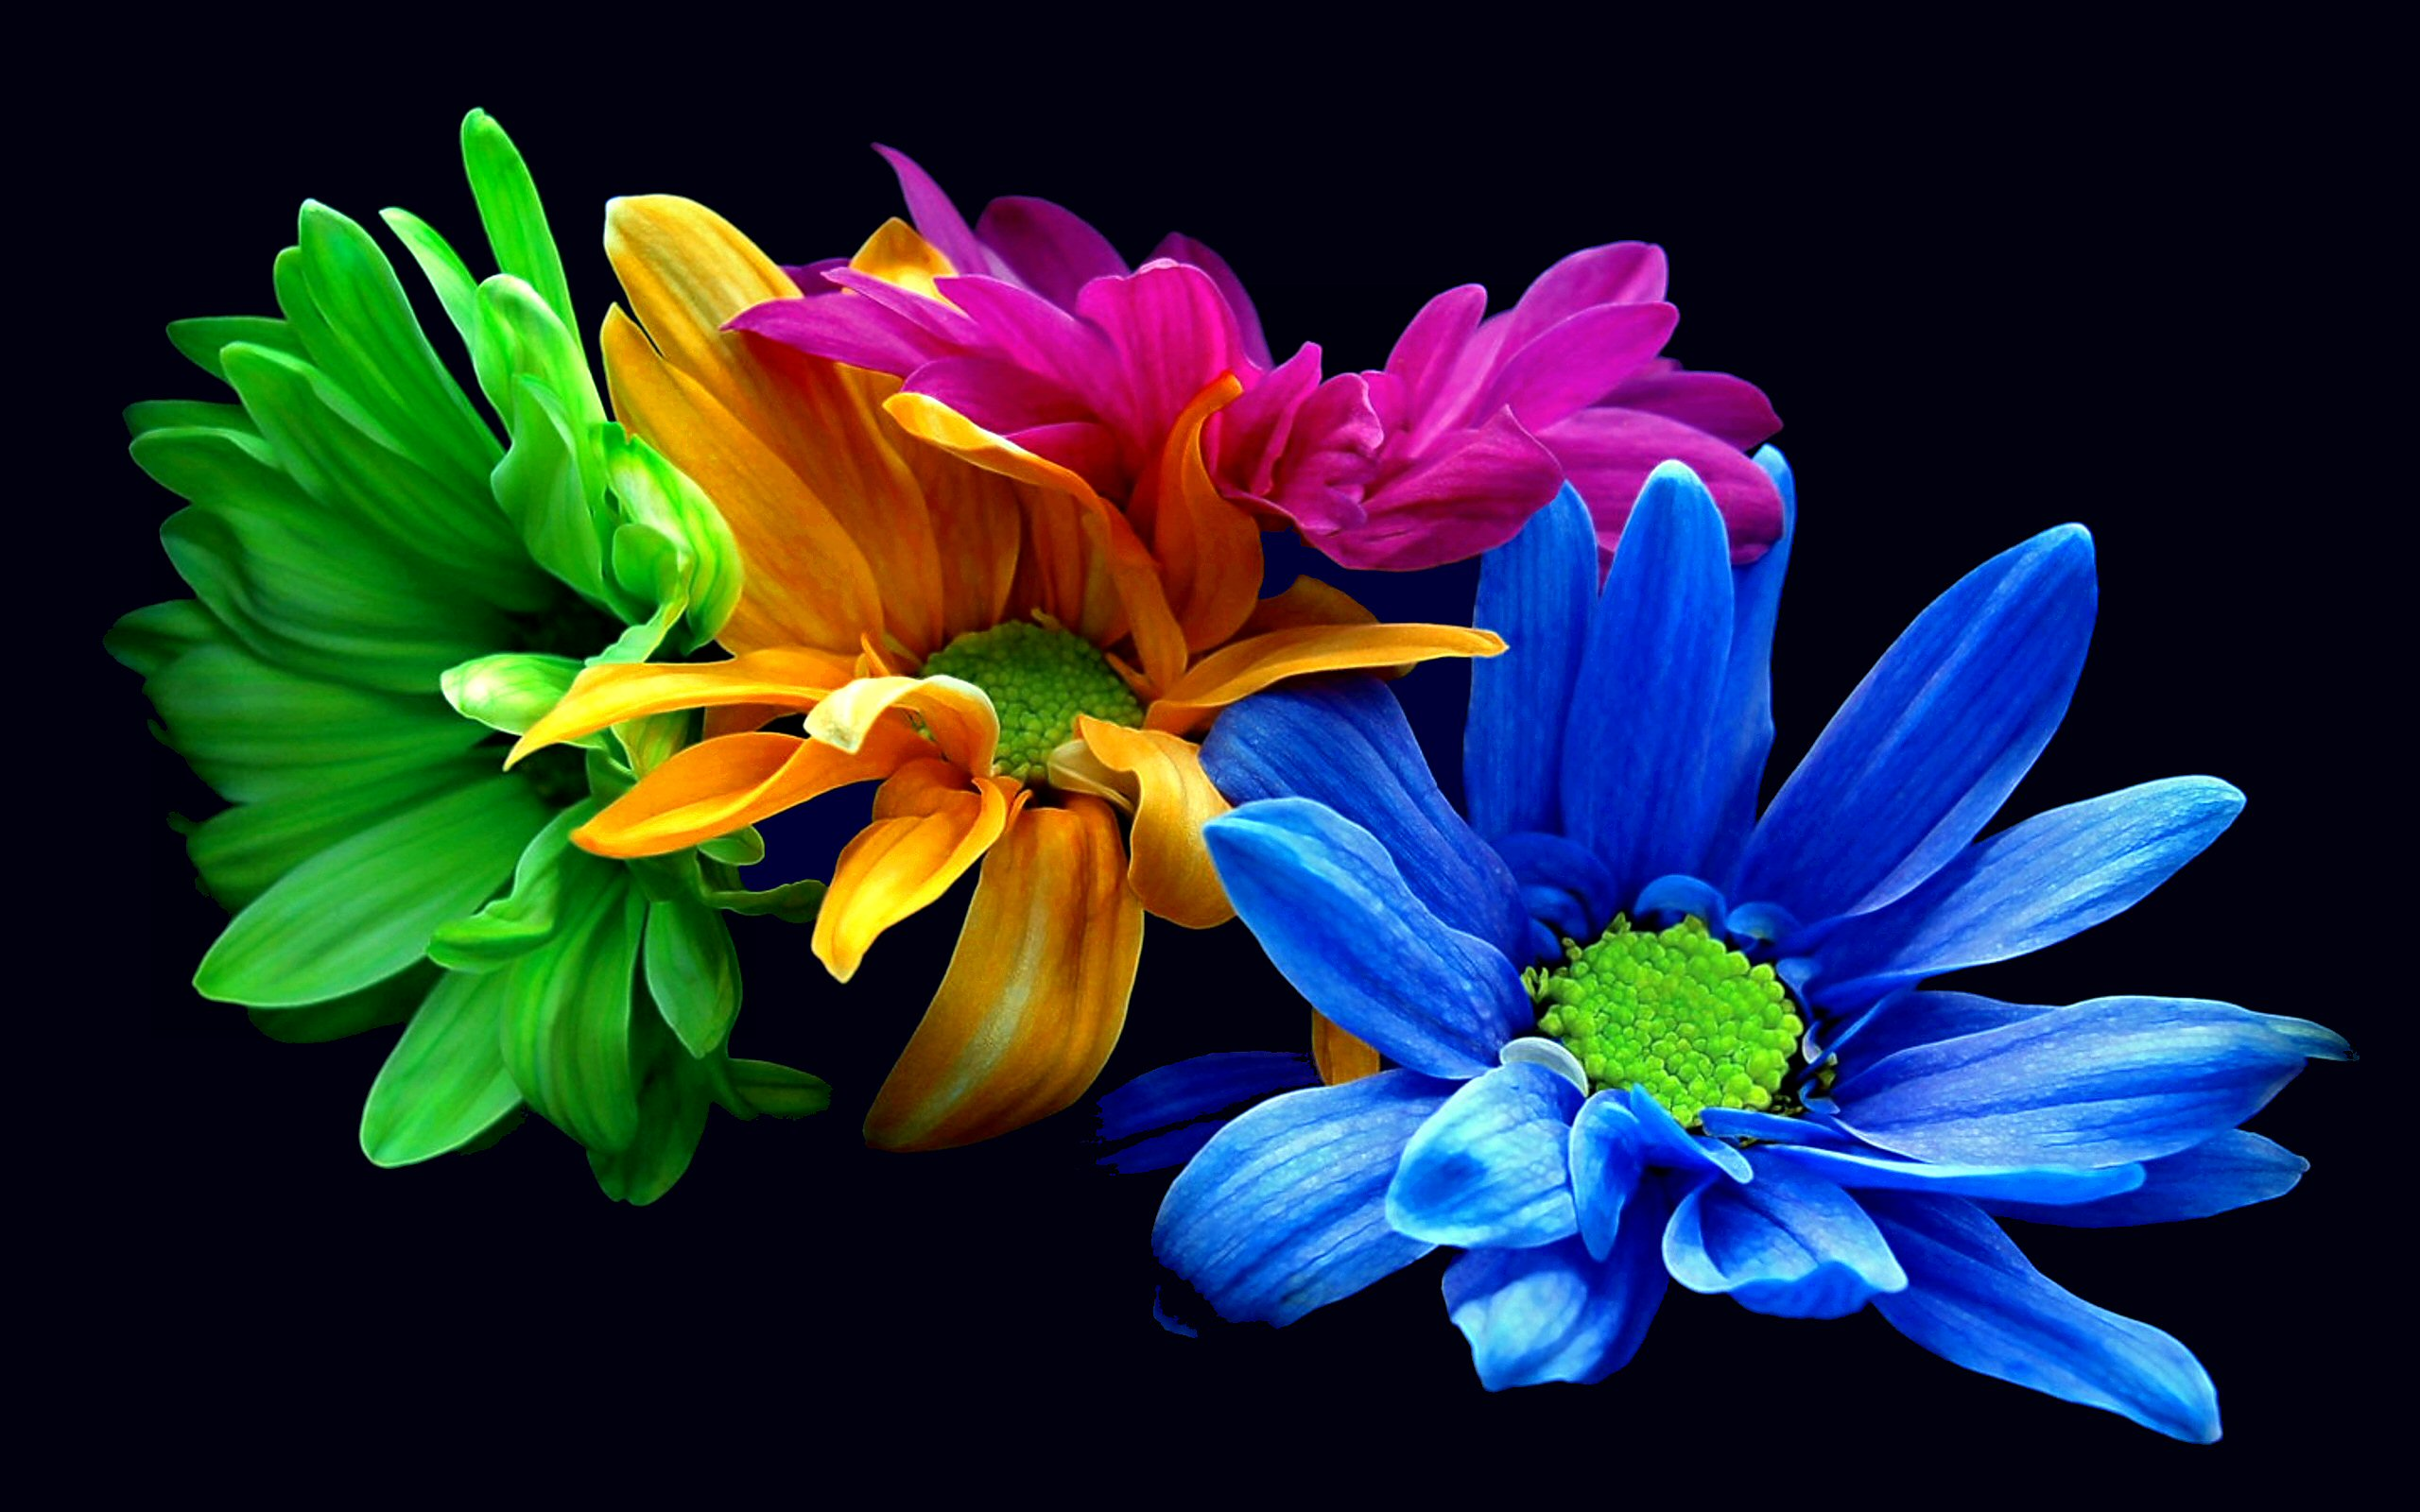 352 blue flower hd wallpapers background images wallpaper abyss izmirmasajfo